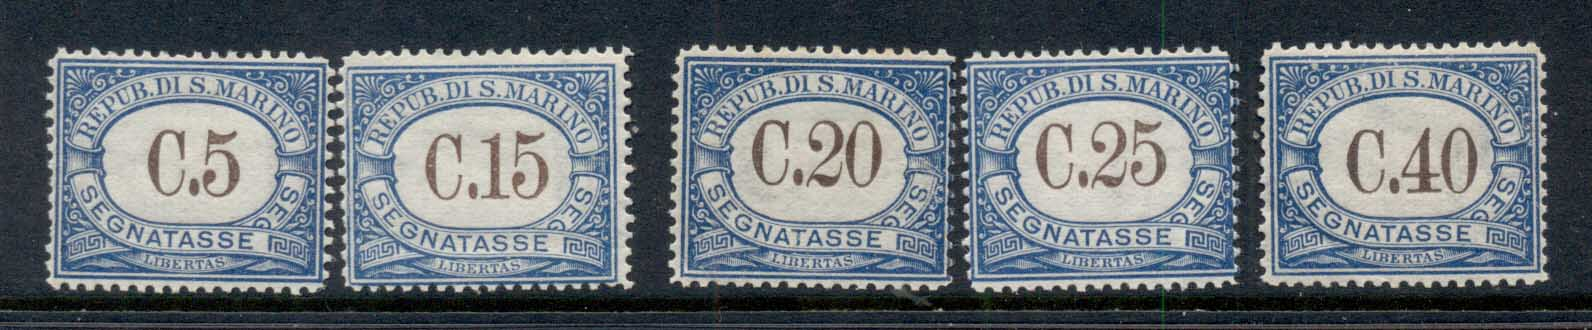 San Marino 1925-29 Postage Dues Asst MLH